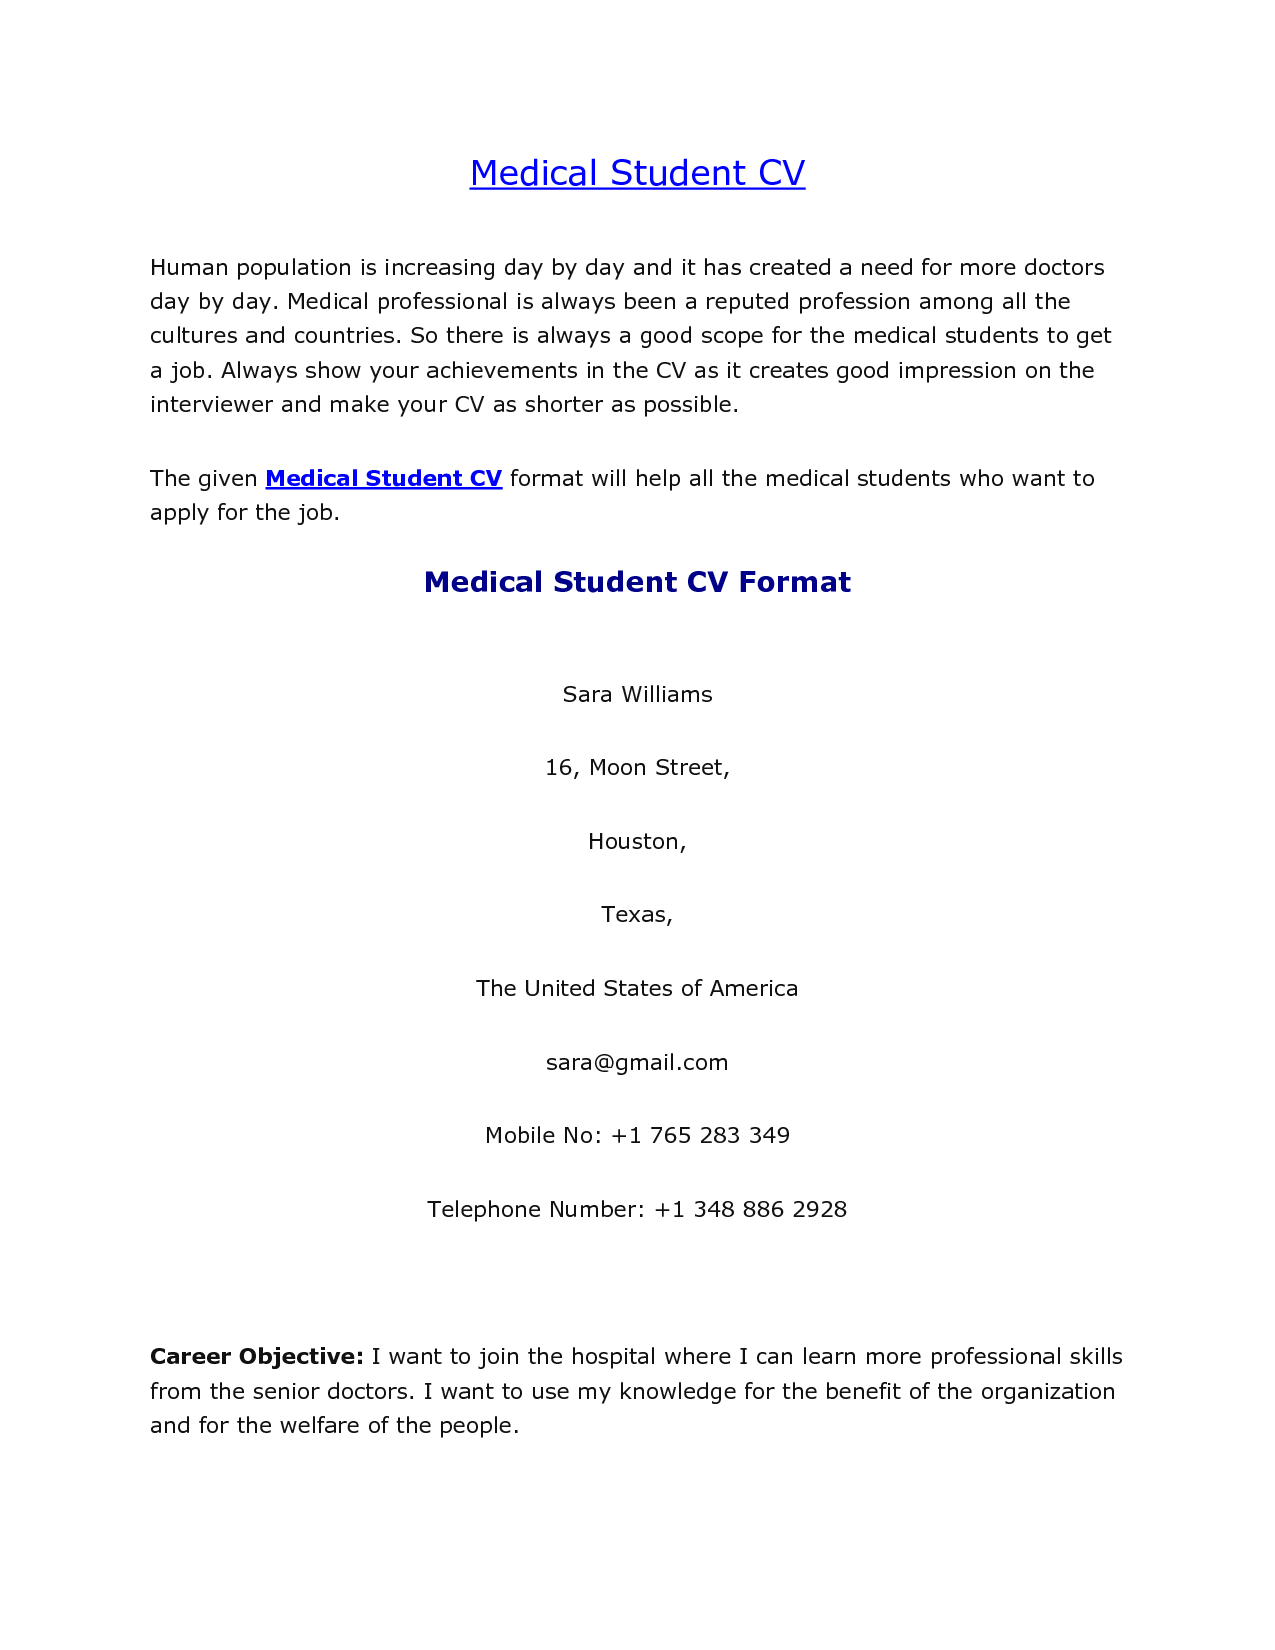 Medical Student Resume Medical Student Cv Sample  Resume Template  Pinterest  Medical